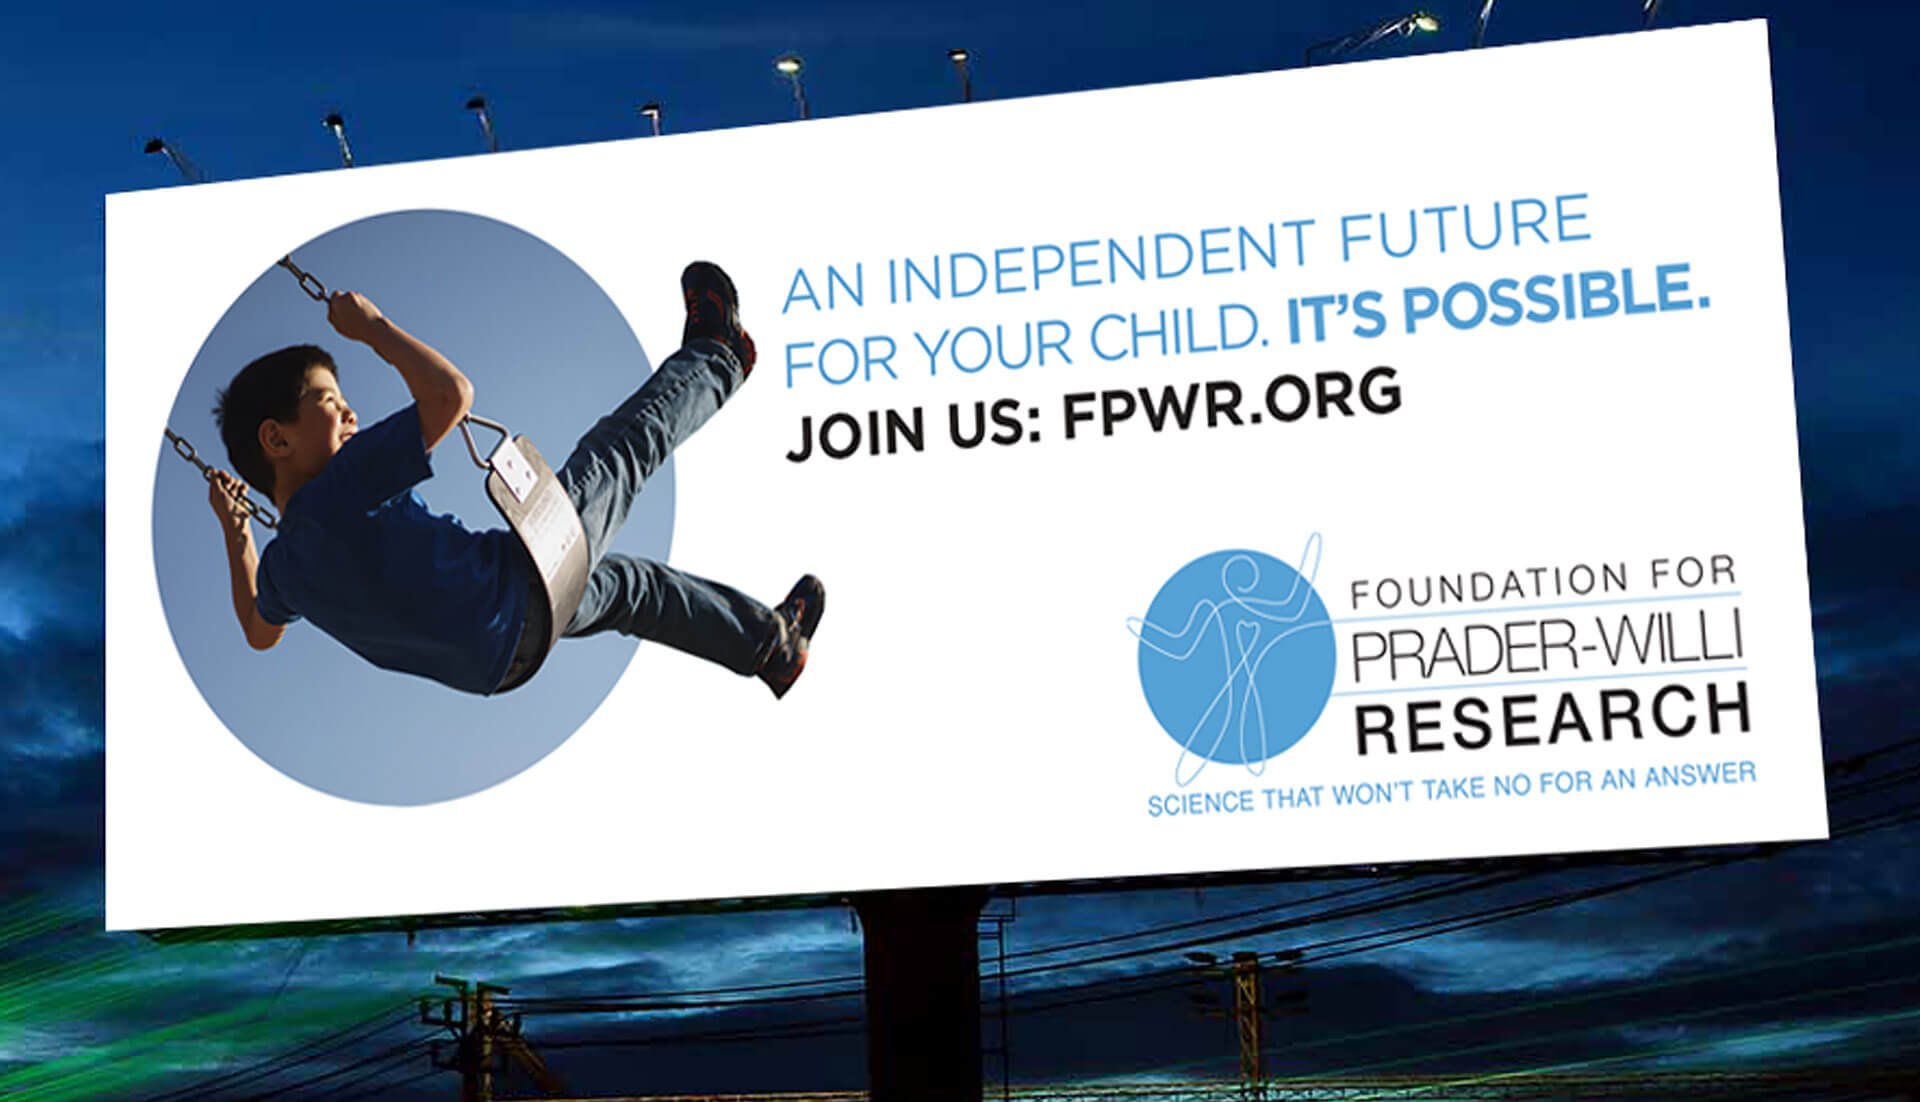 Foundation for Prader-Willi Research.Science that won't take no for an answer.